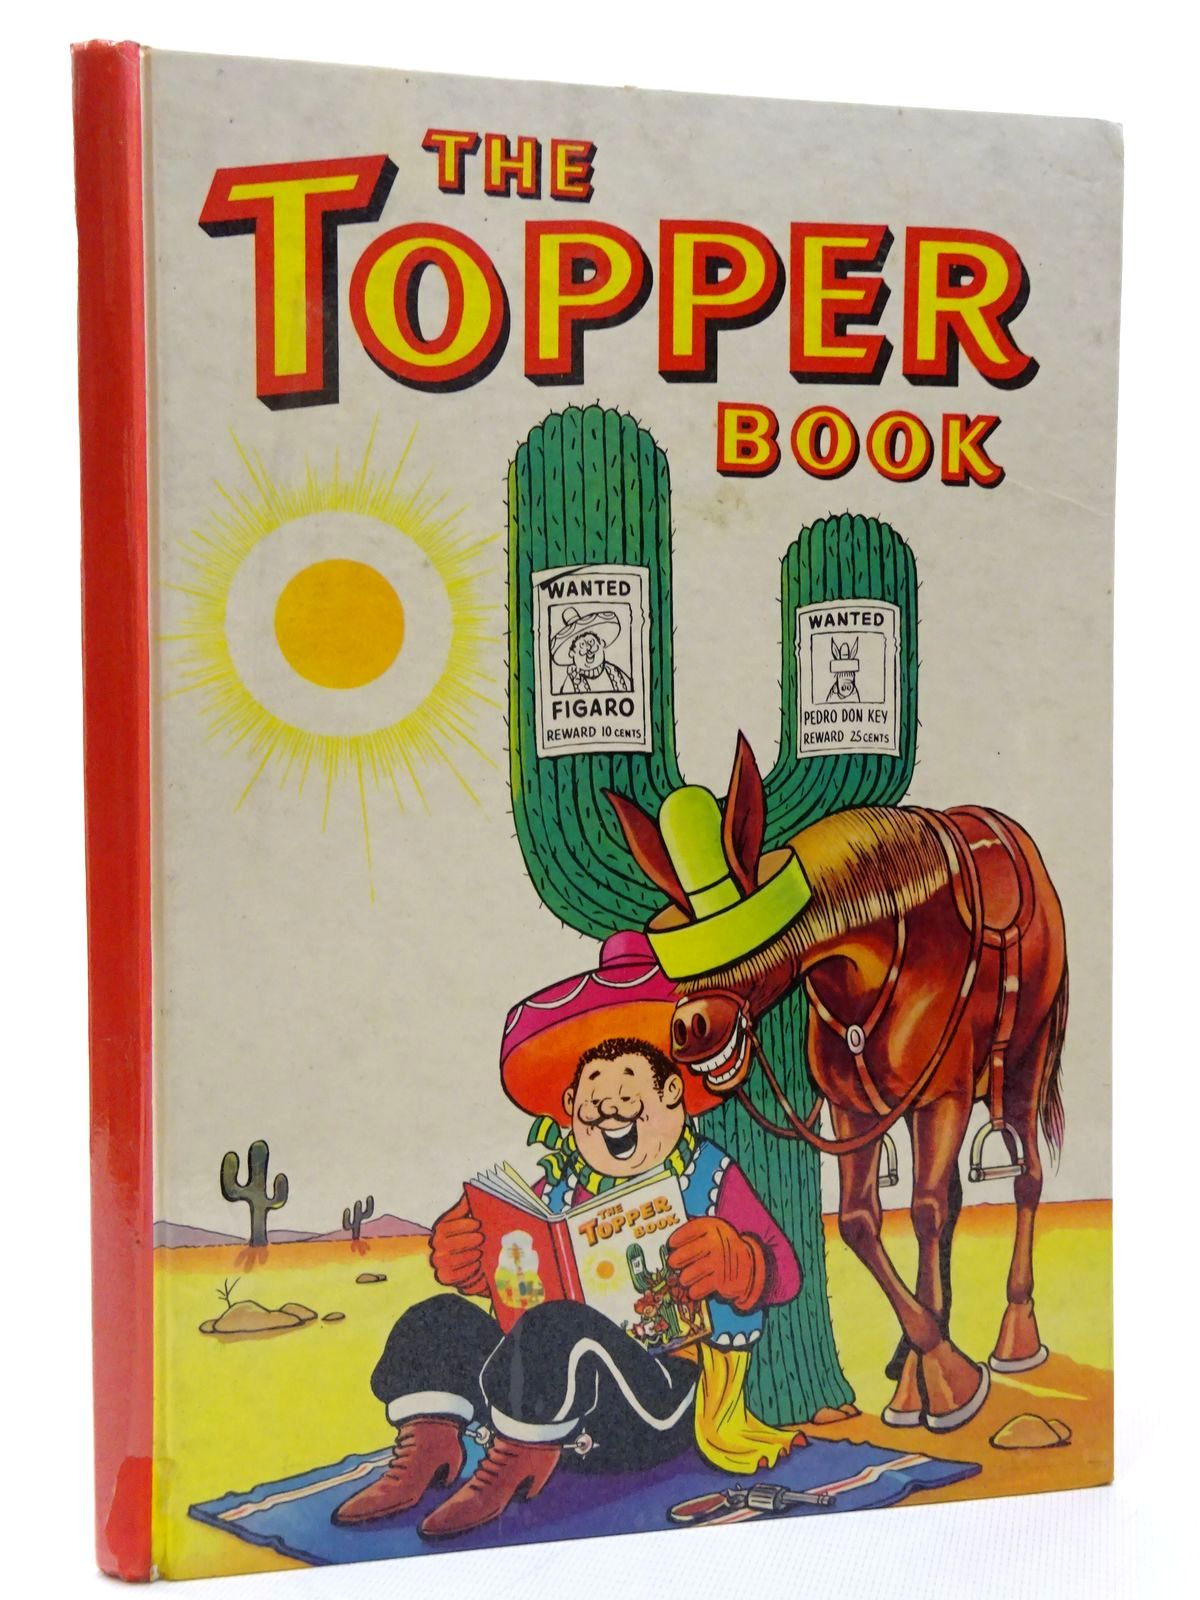 Photo of THE TOPPER BOOK 1961 published by D.C. Thomson & Co Ltd. (STOCK CODE: 1815608)  for sale by Stella & Rose's Books